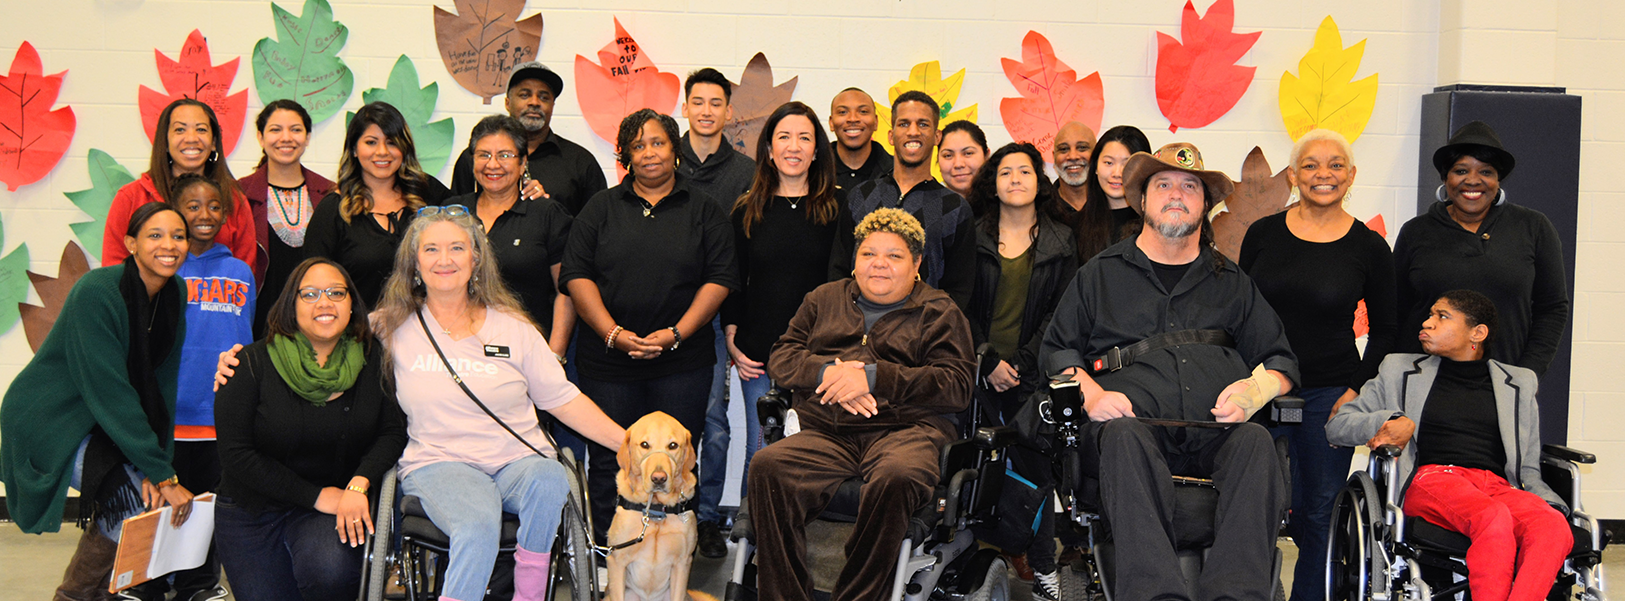 Our members and volunteers at the Disability Awareness Career Day in 2018